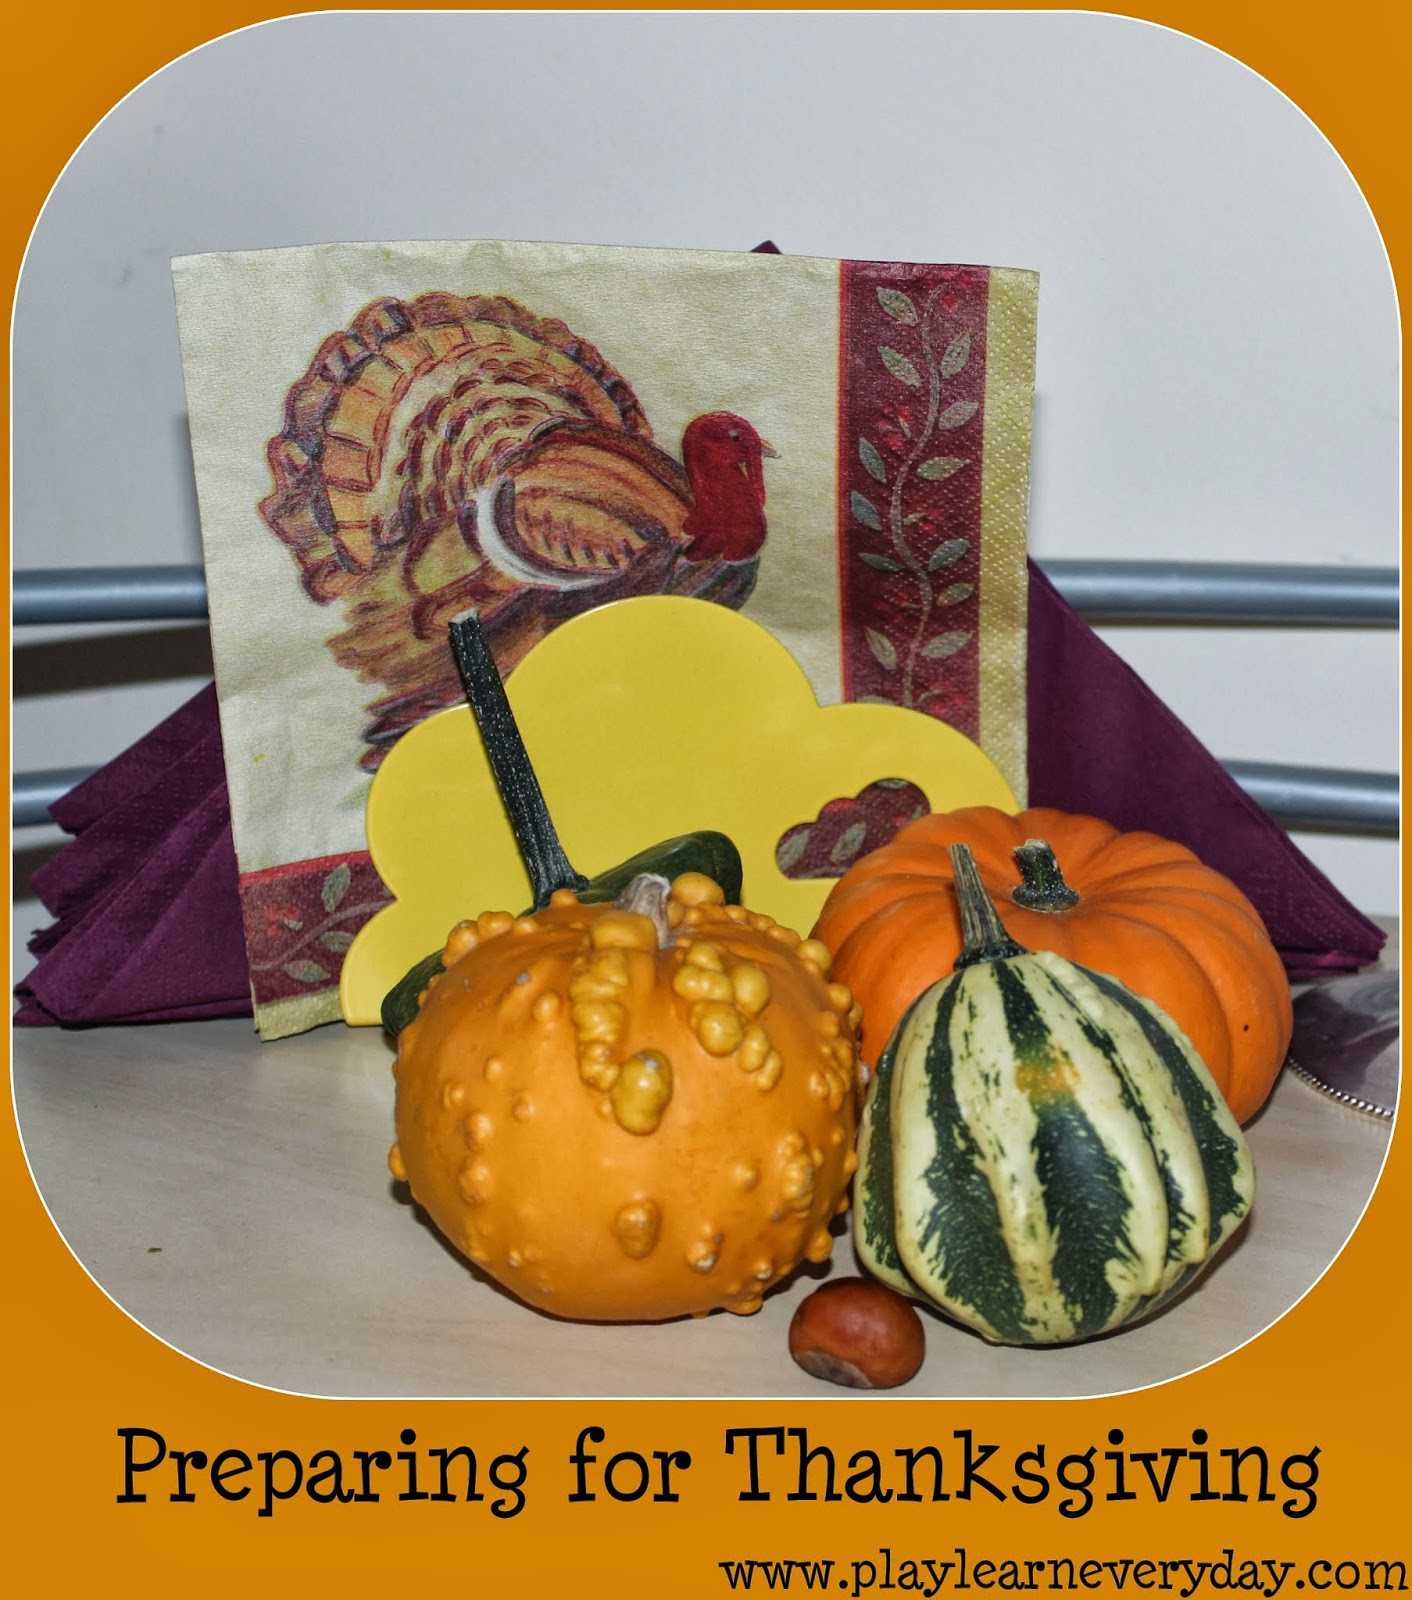 Prep A Turkey For Thanksgiving  Preparing for Thanksgiving Play and Learn Every Day